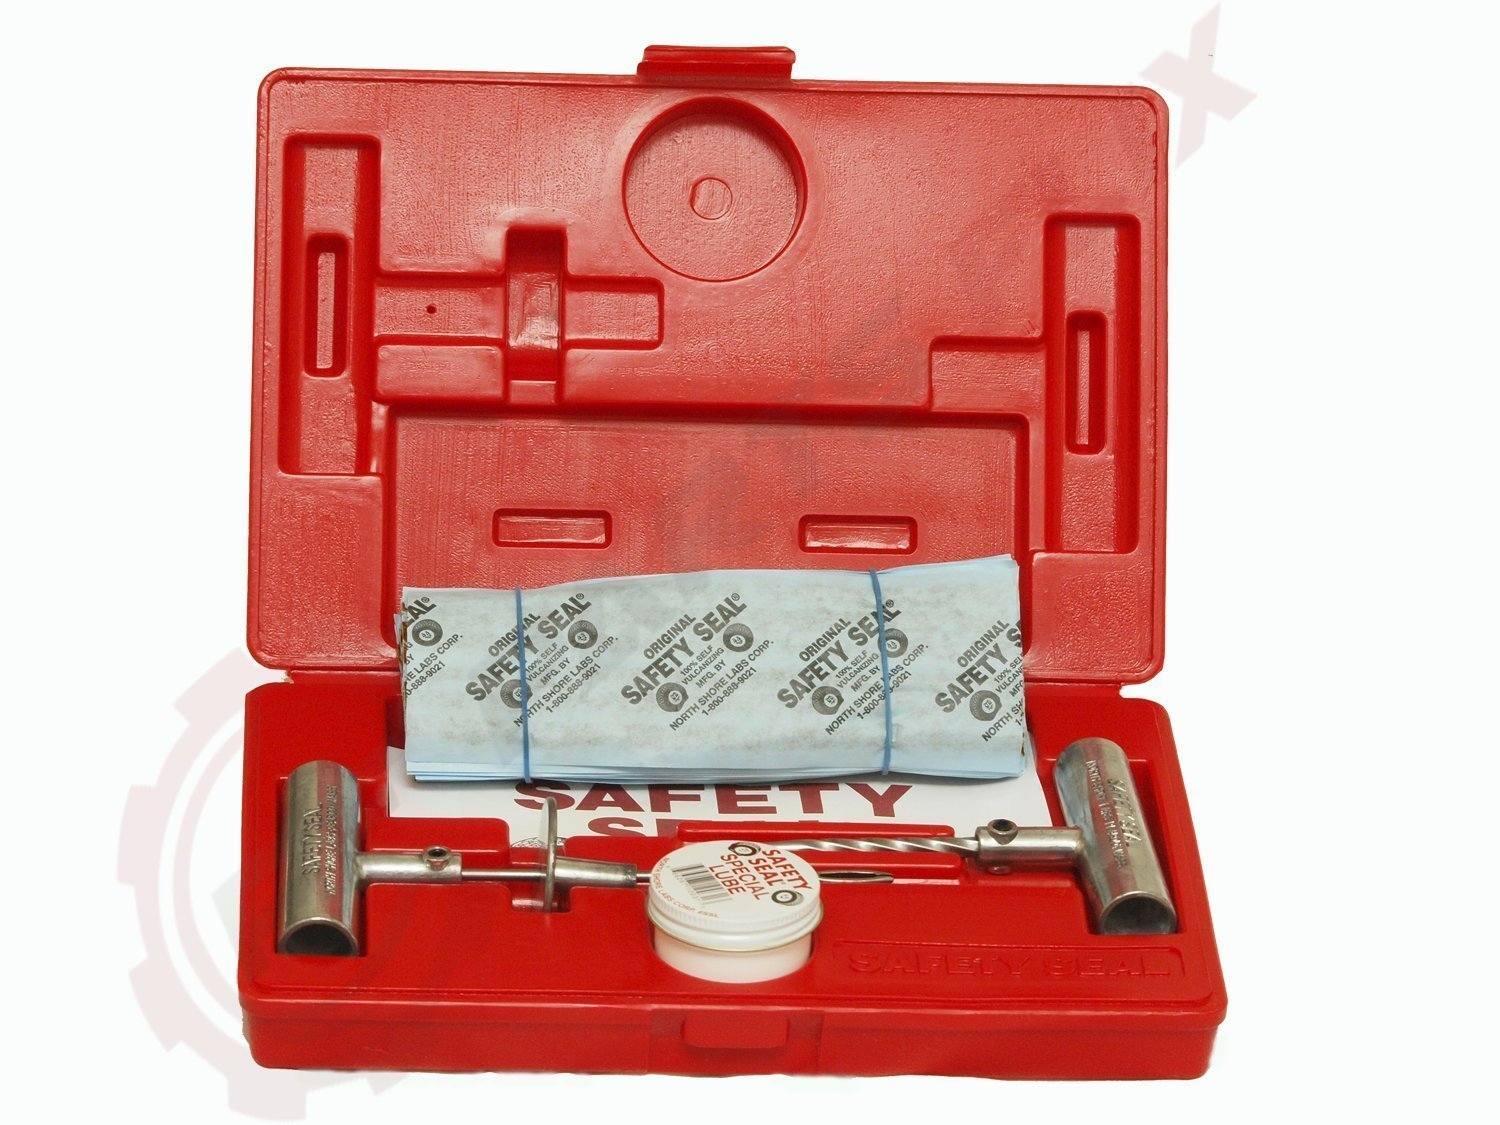 Safety Seal Truck Deluxe Tire Repair Kit 30 Repairs by Safety Seal